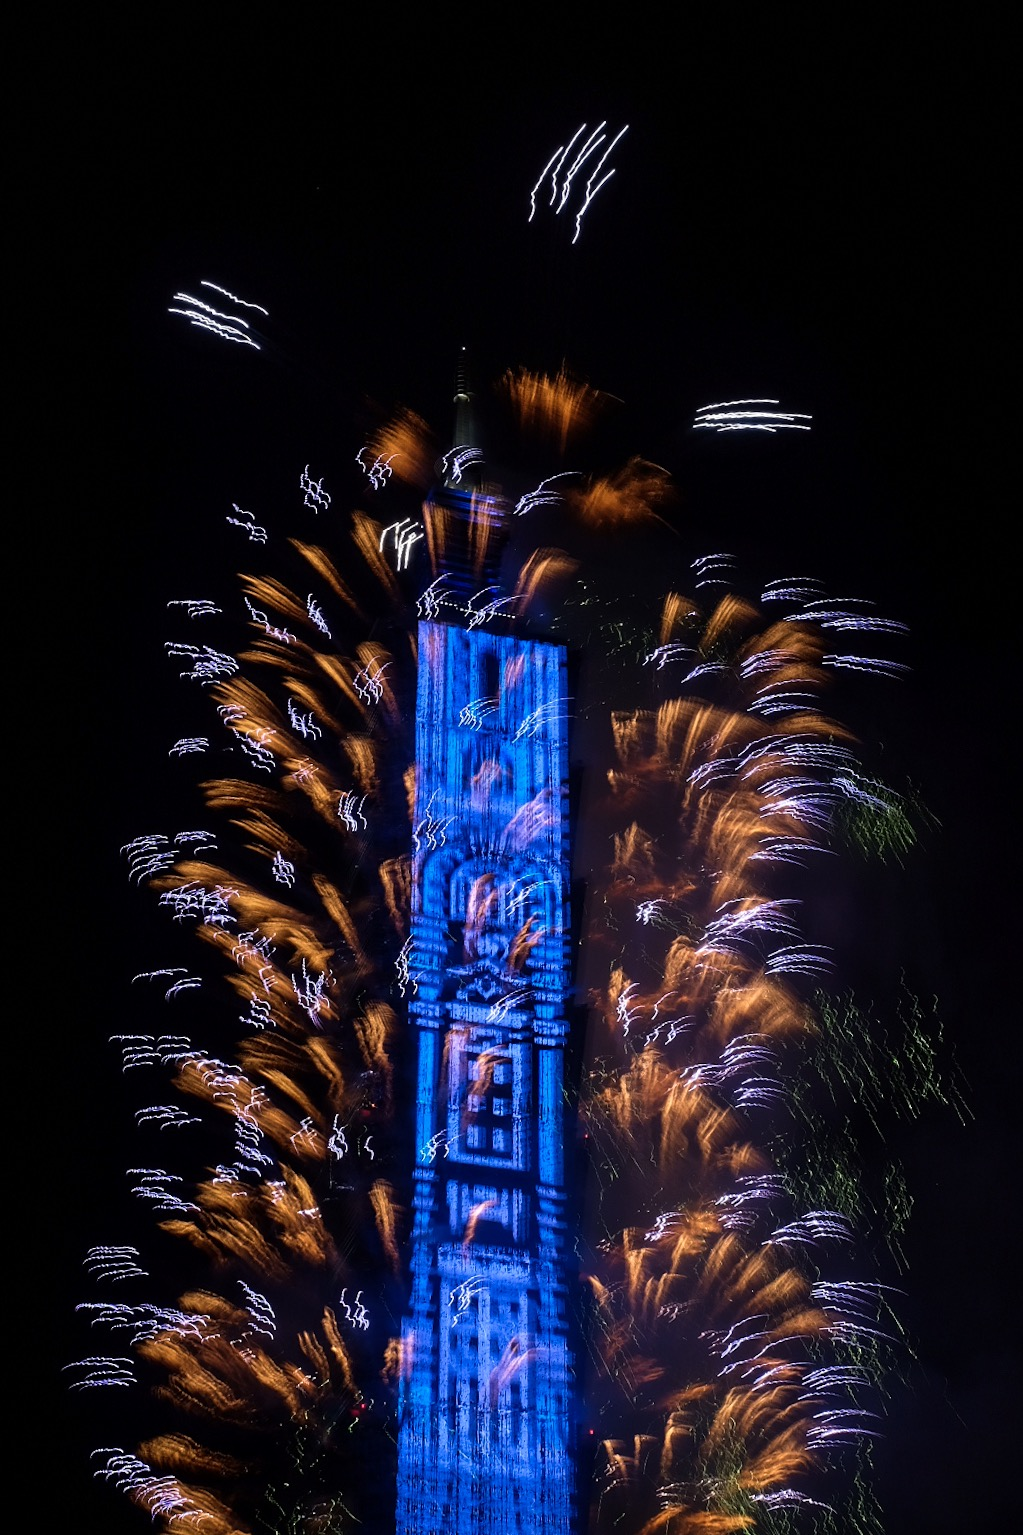 HAPPY NEW YEAR! Taipei 101 welcomes 2018 with magnificent fireworks and LED light show